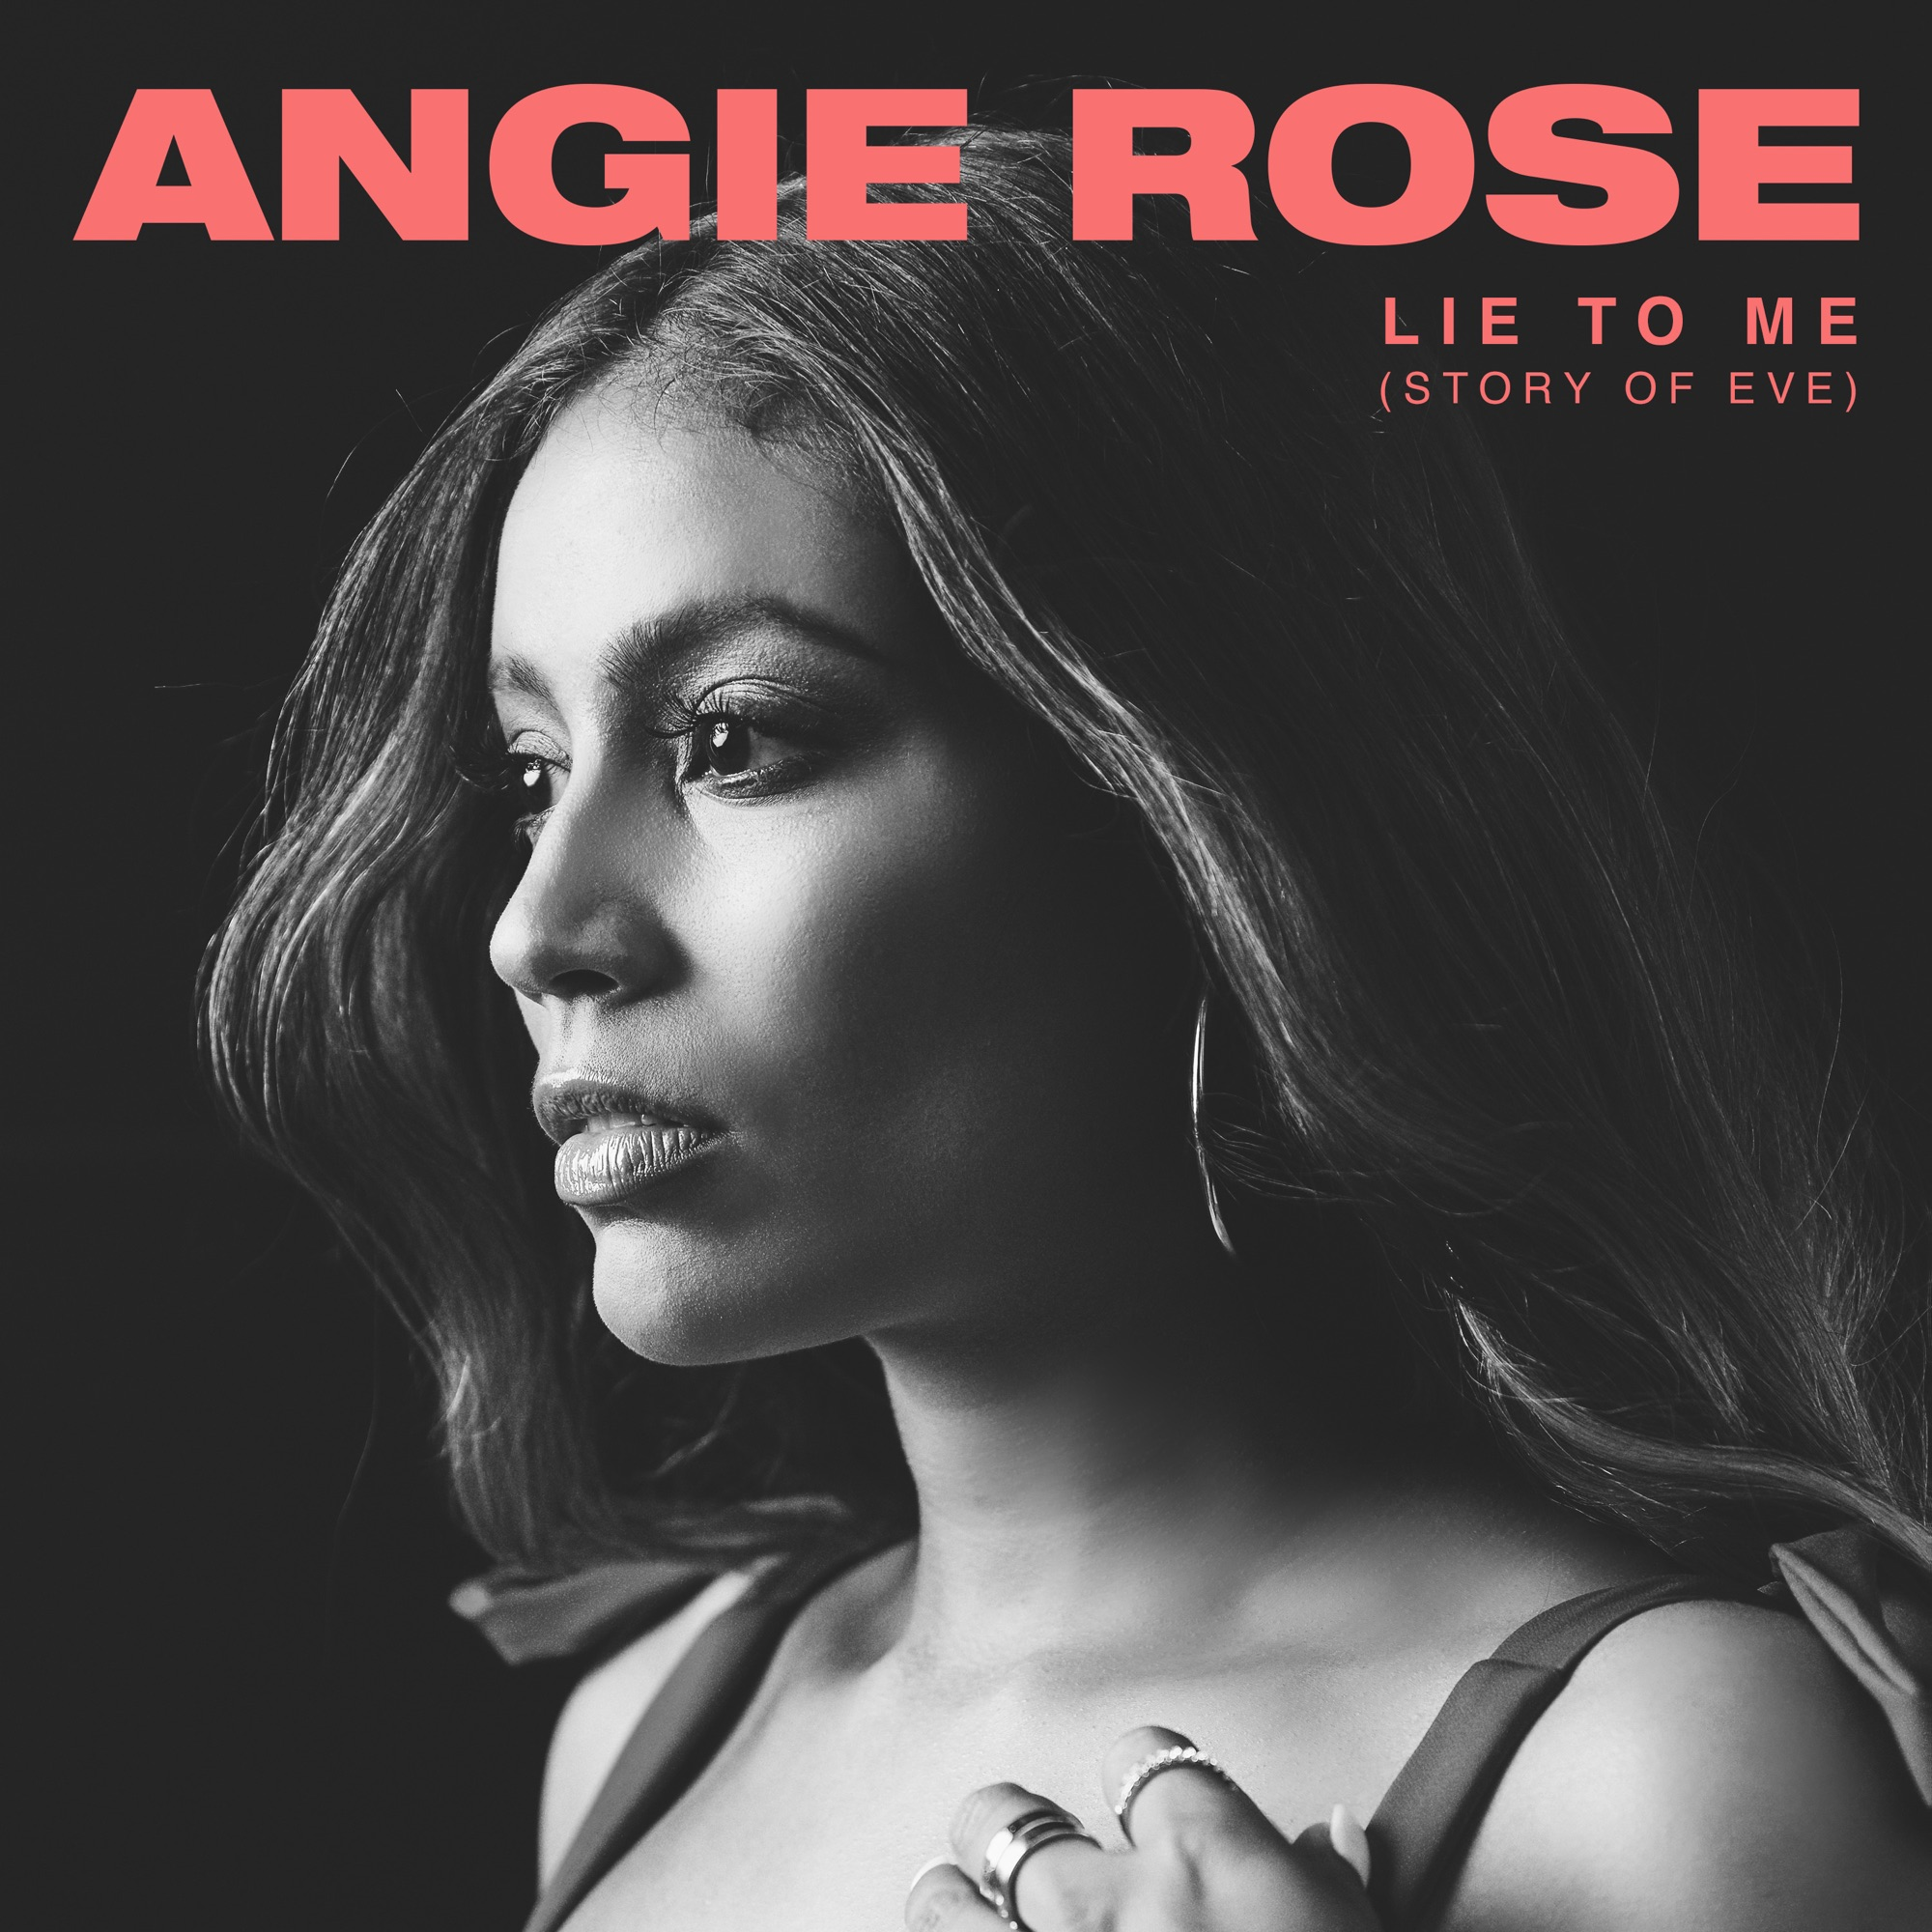 Art for Lie To Me (Story of Eve) by Angie Rose